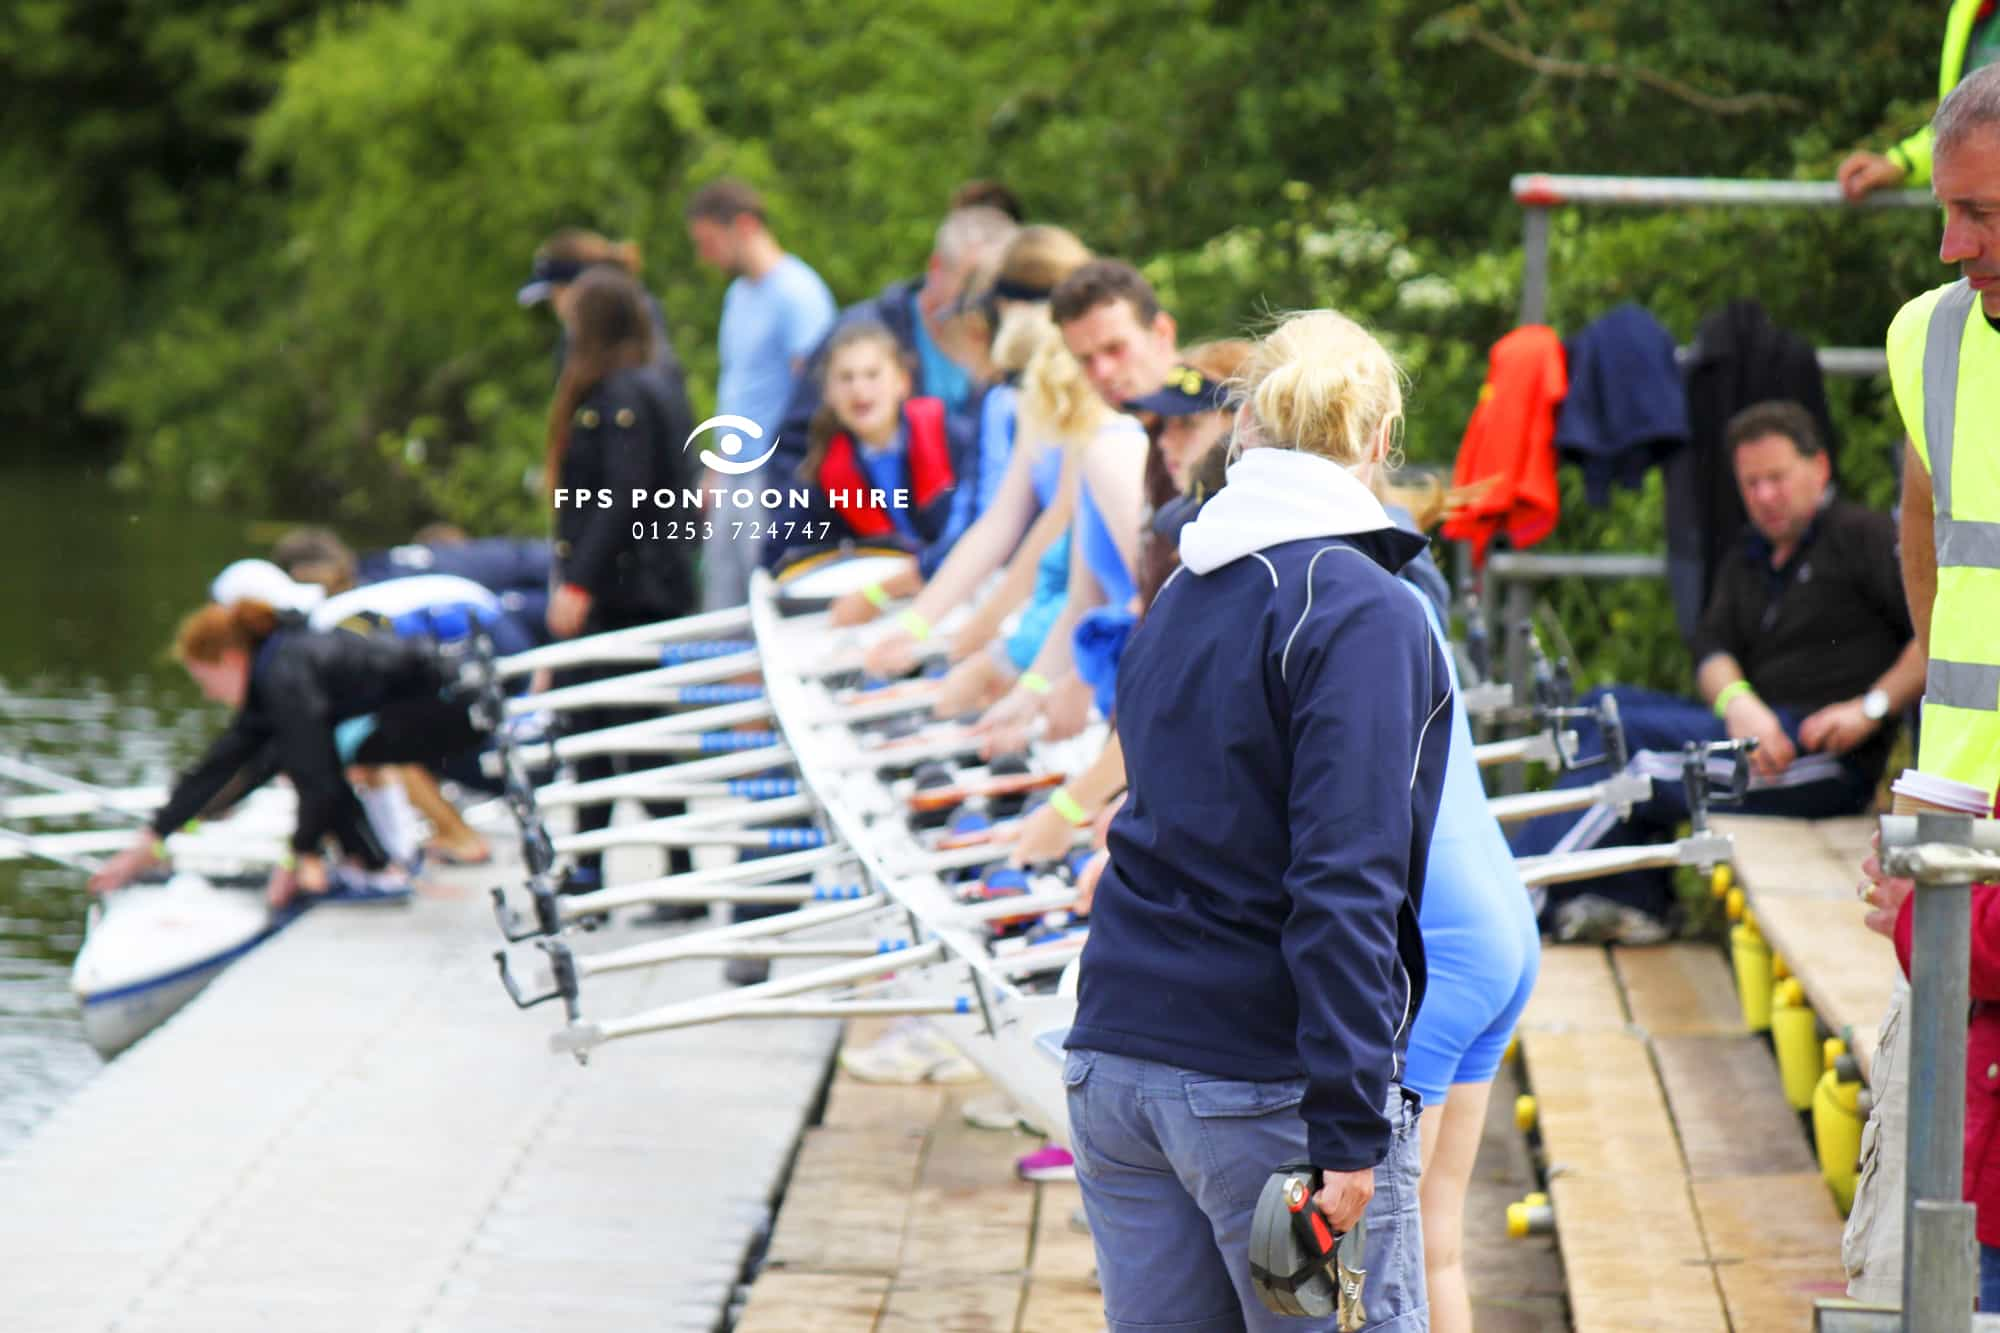 Queens Coronation Windsor Castle 60th Anniversary Regatta Boating by Floating Pontoon Solutions